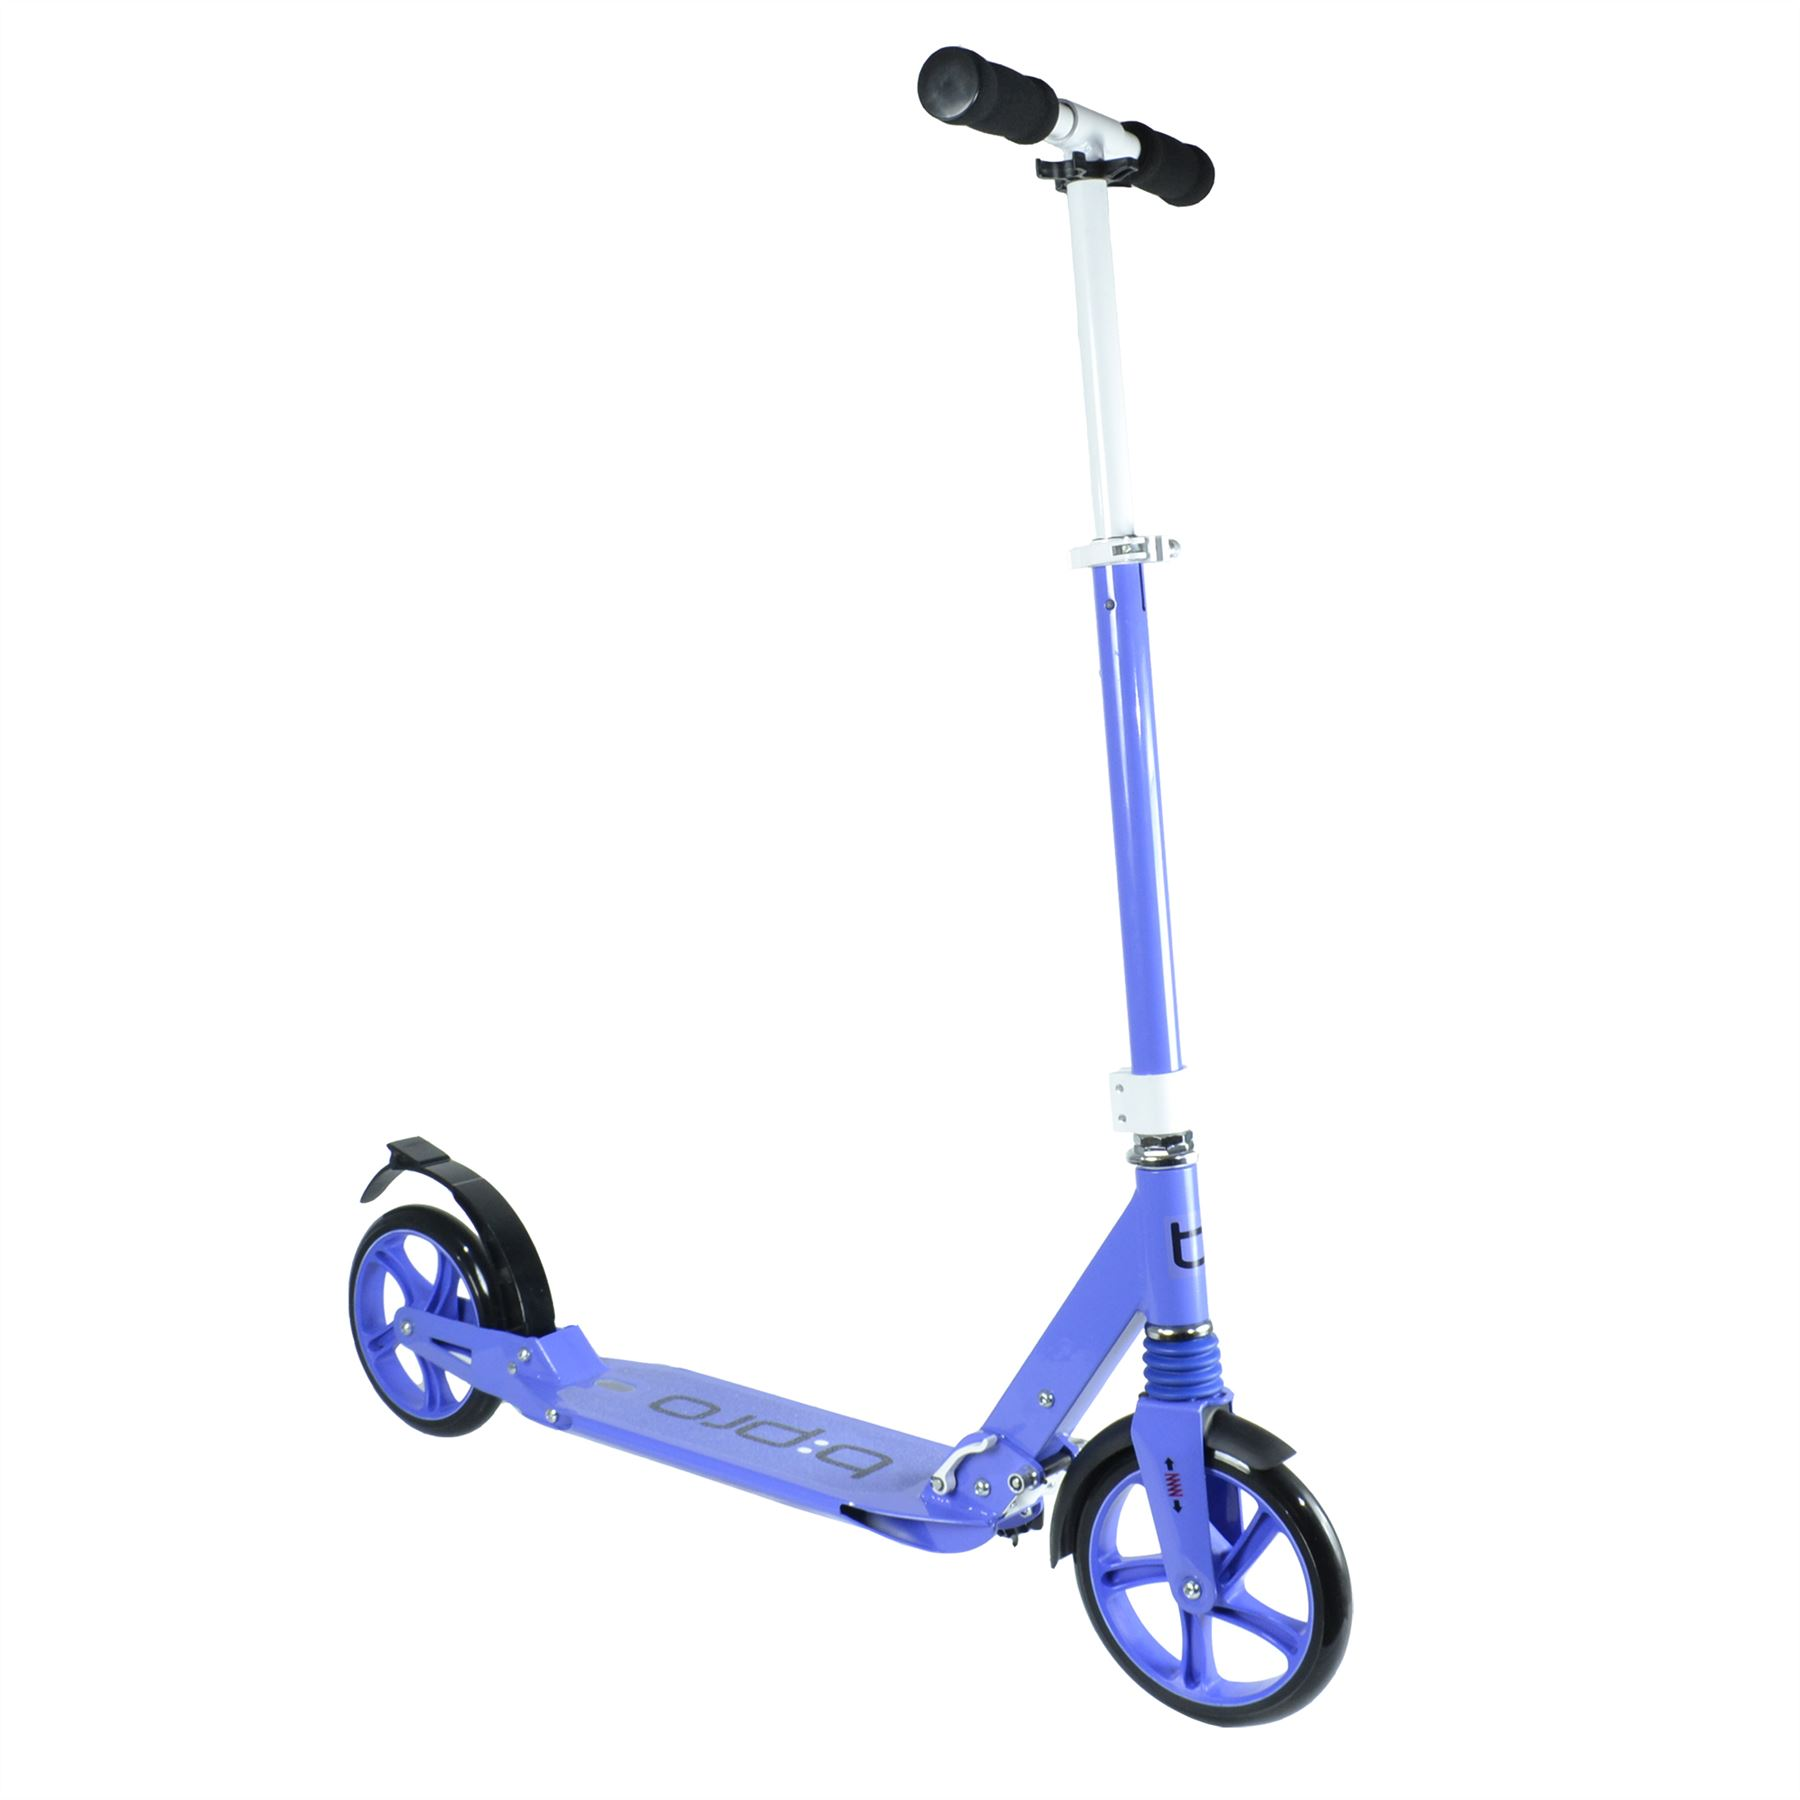 bpro adult urban folding suspension town commute scooter street wheel 200mm kick ebay. Black Bedroom Furniture Sets. Home Design Ideas